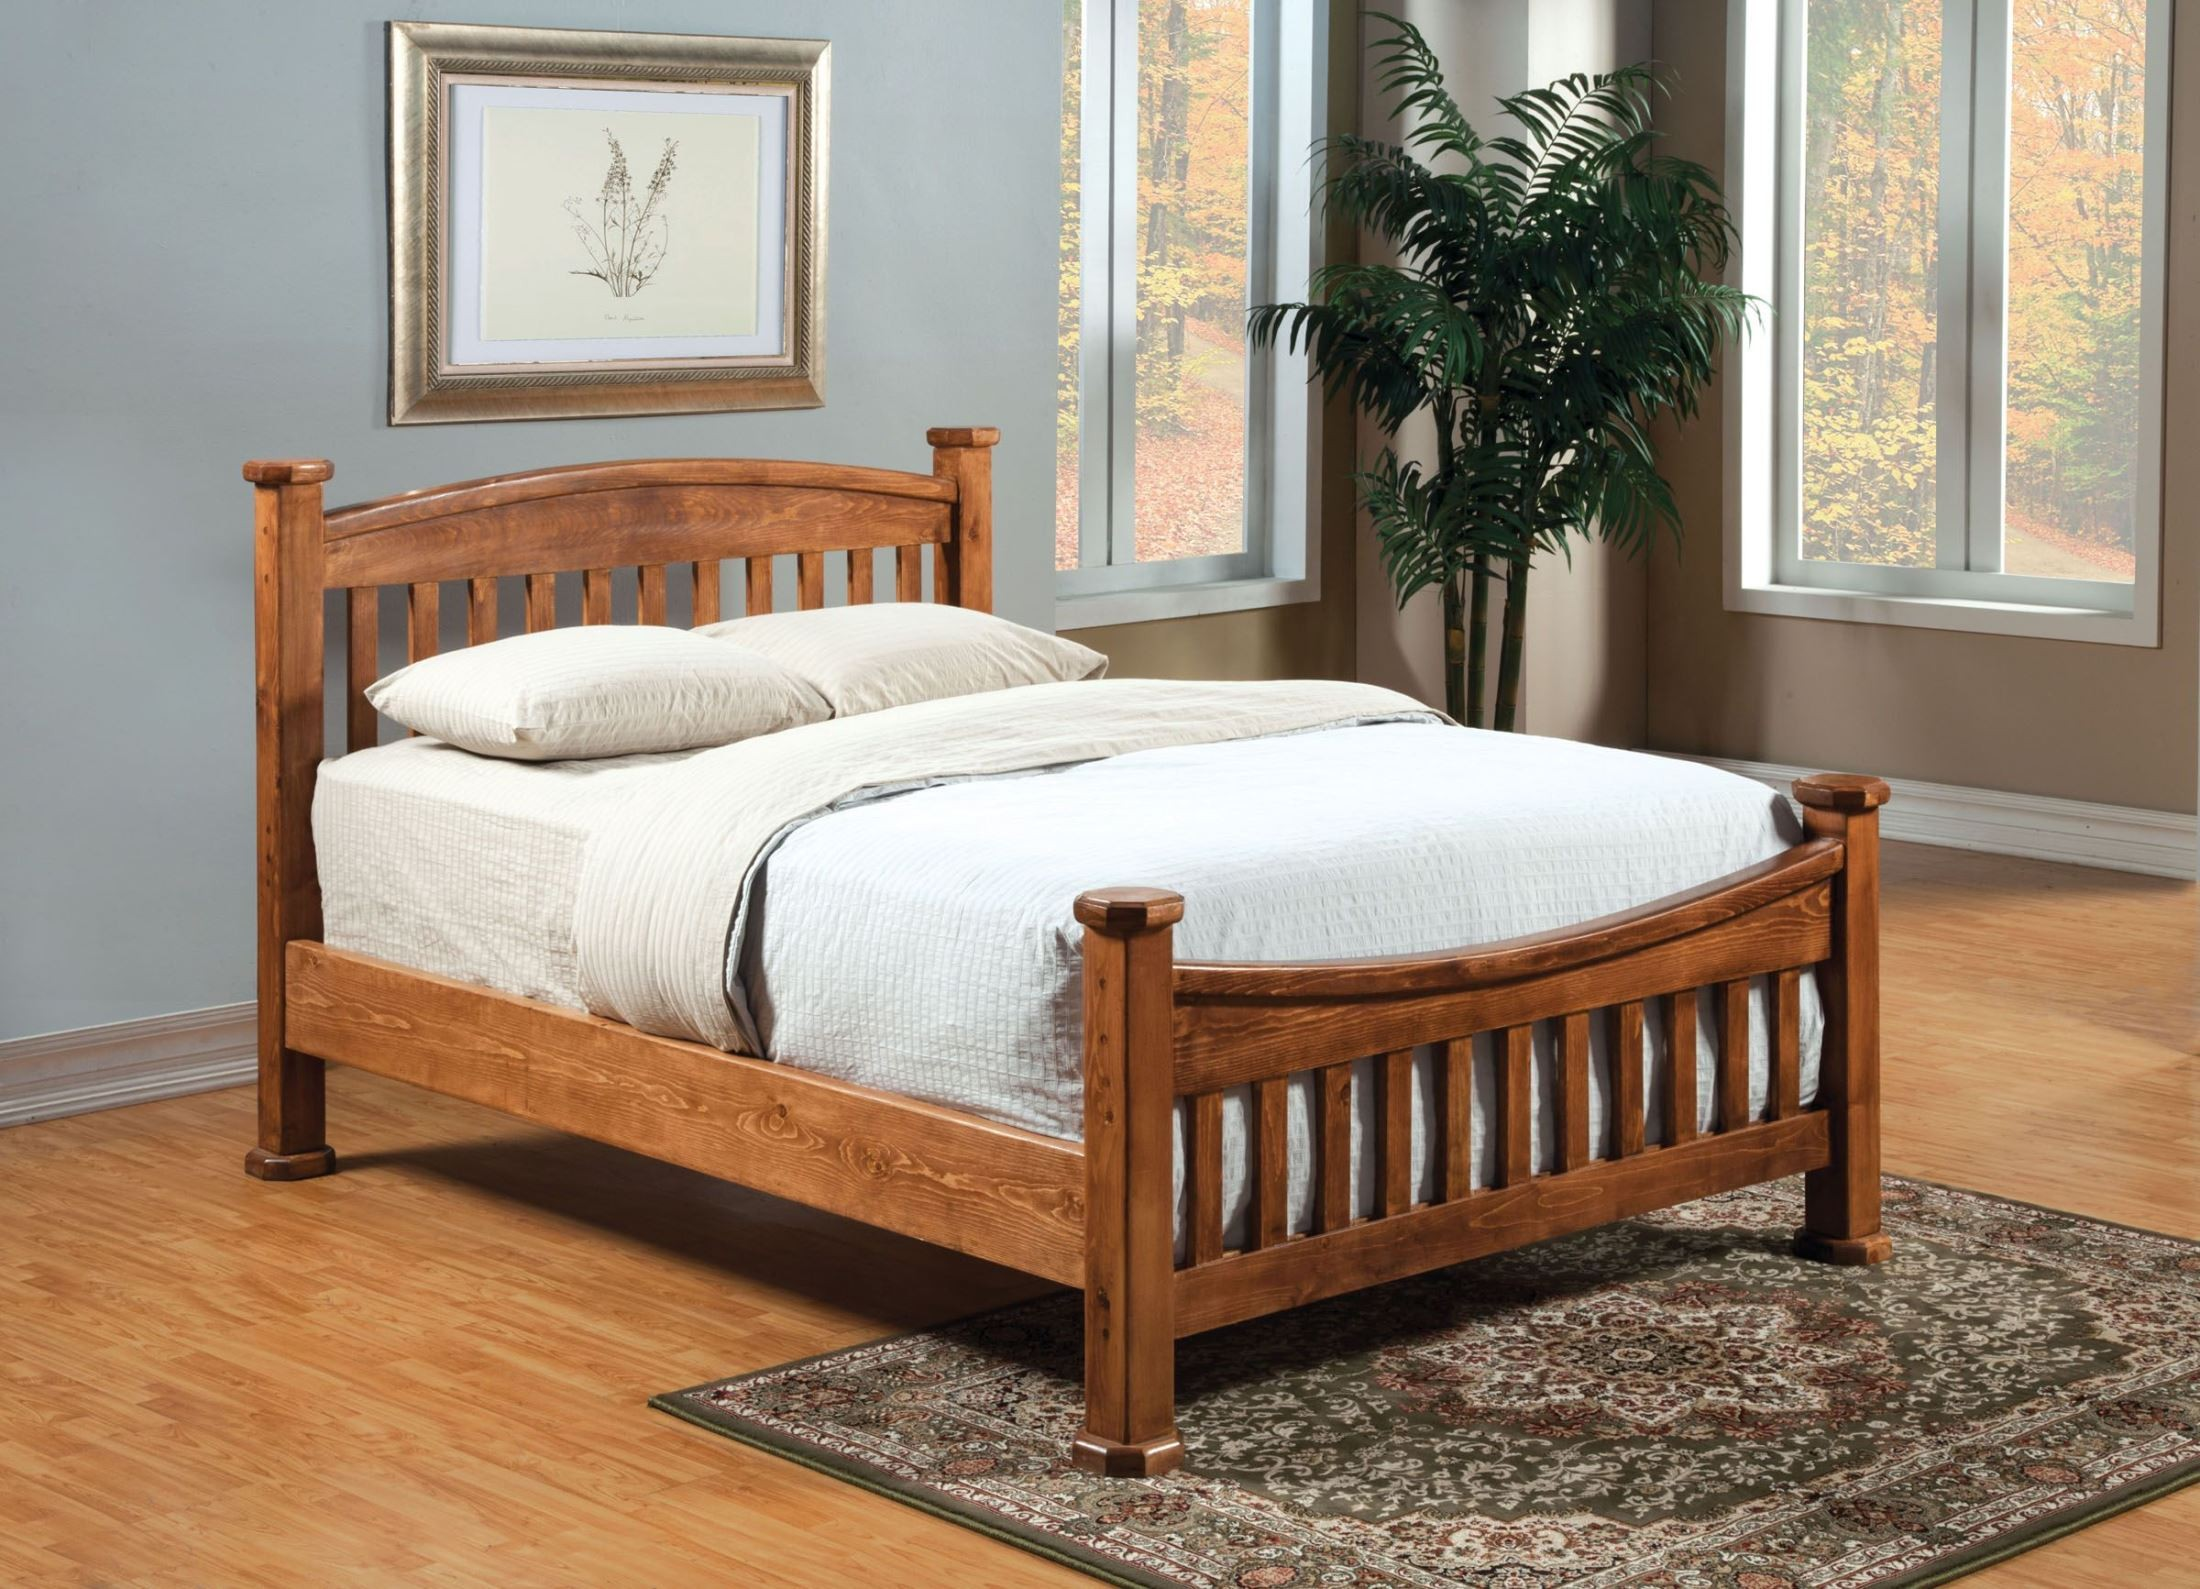 Buffalo rustic oak twin headboard from furniture of for Mission style bed frame plans